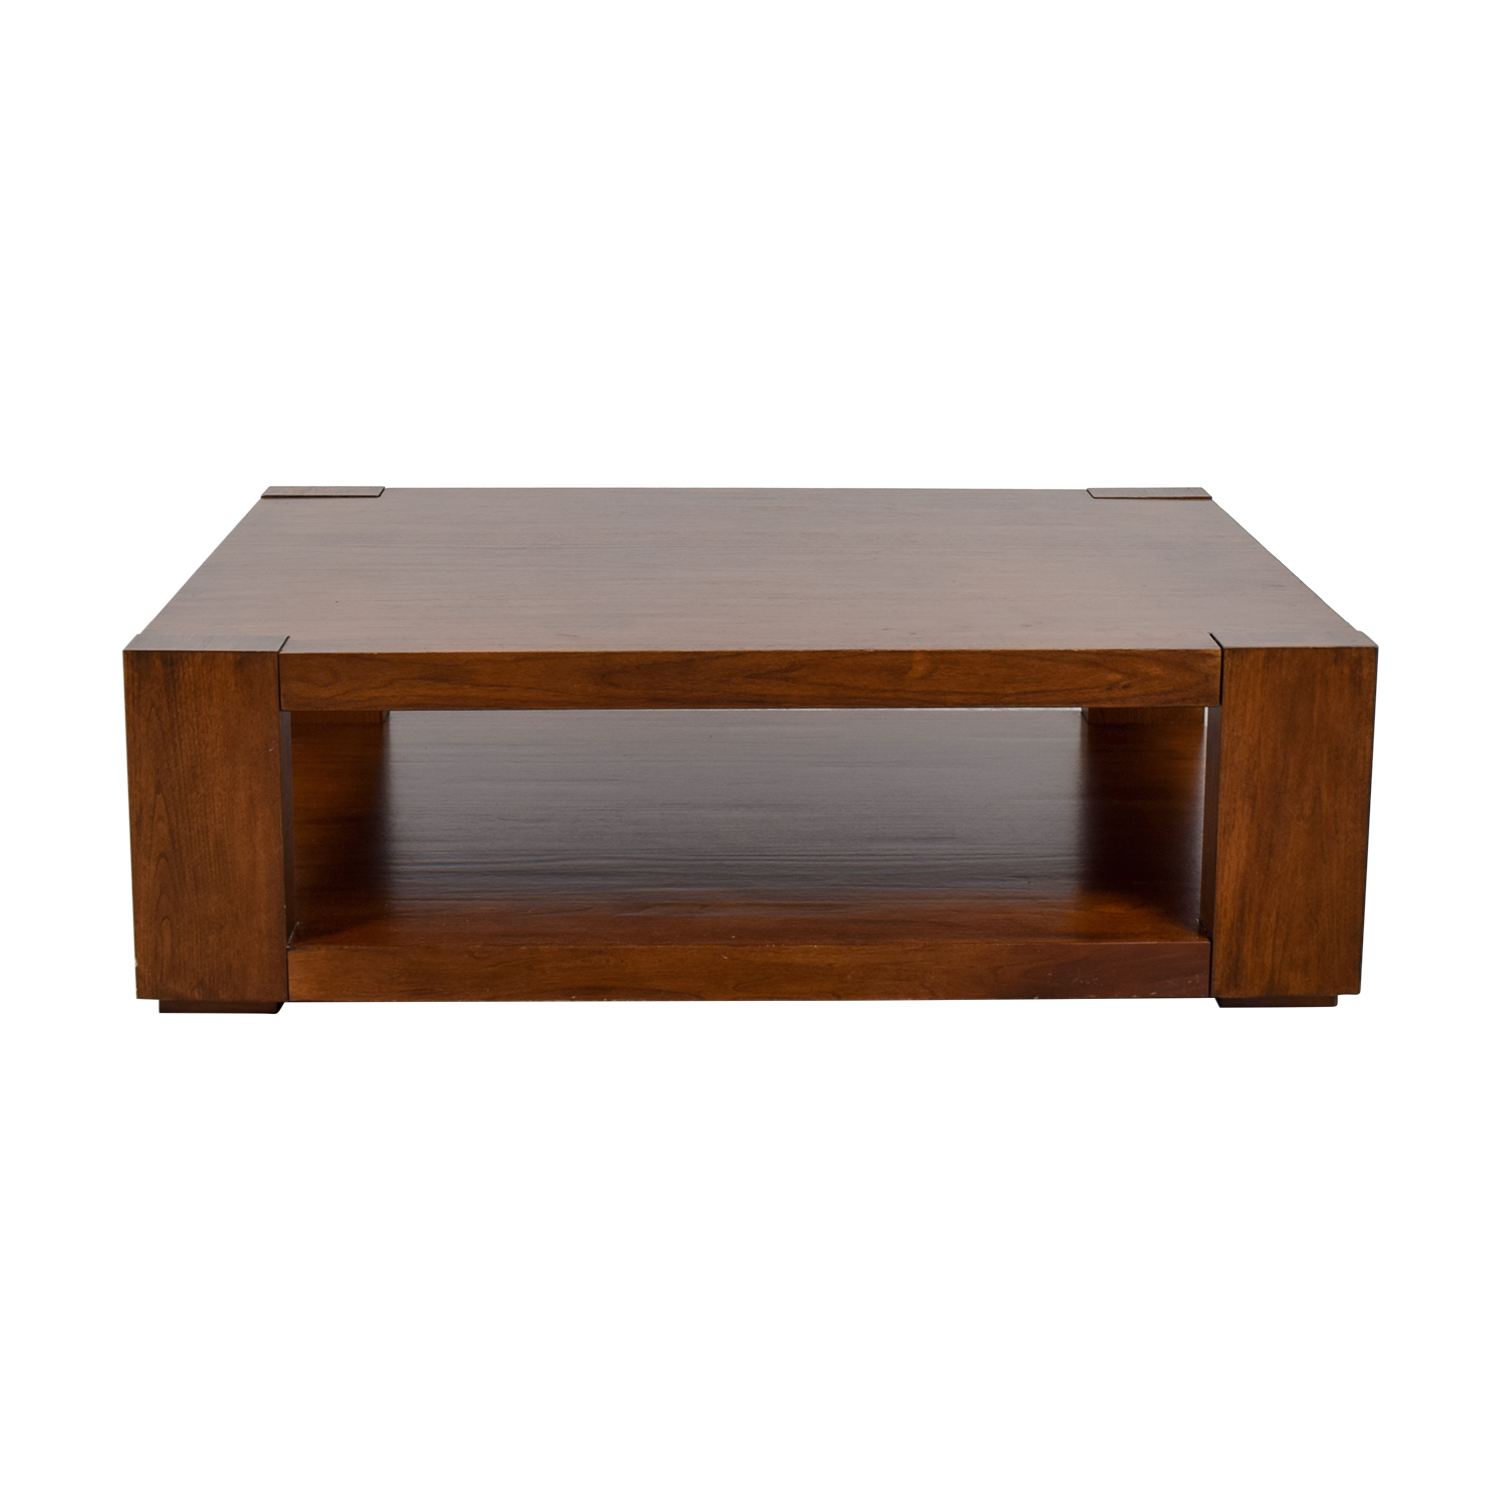 buy Crate & Barrel Lodge Coffee Table Crate & Barrel